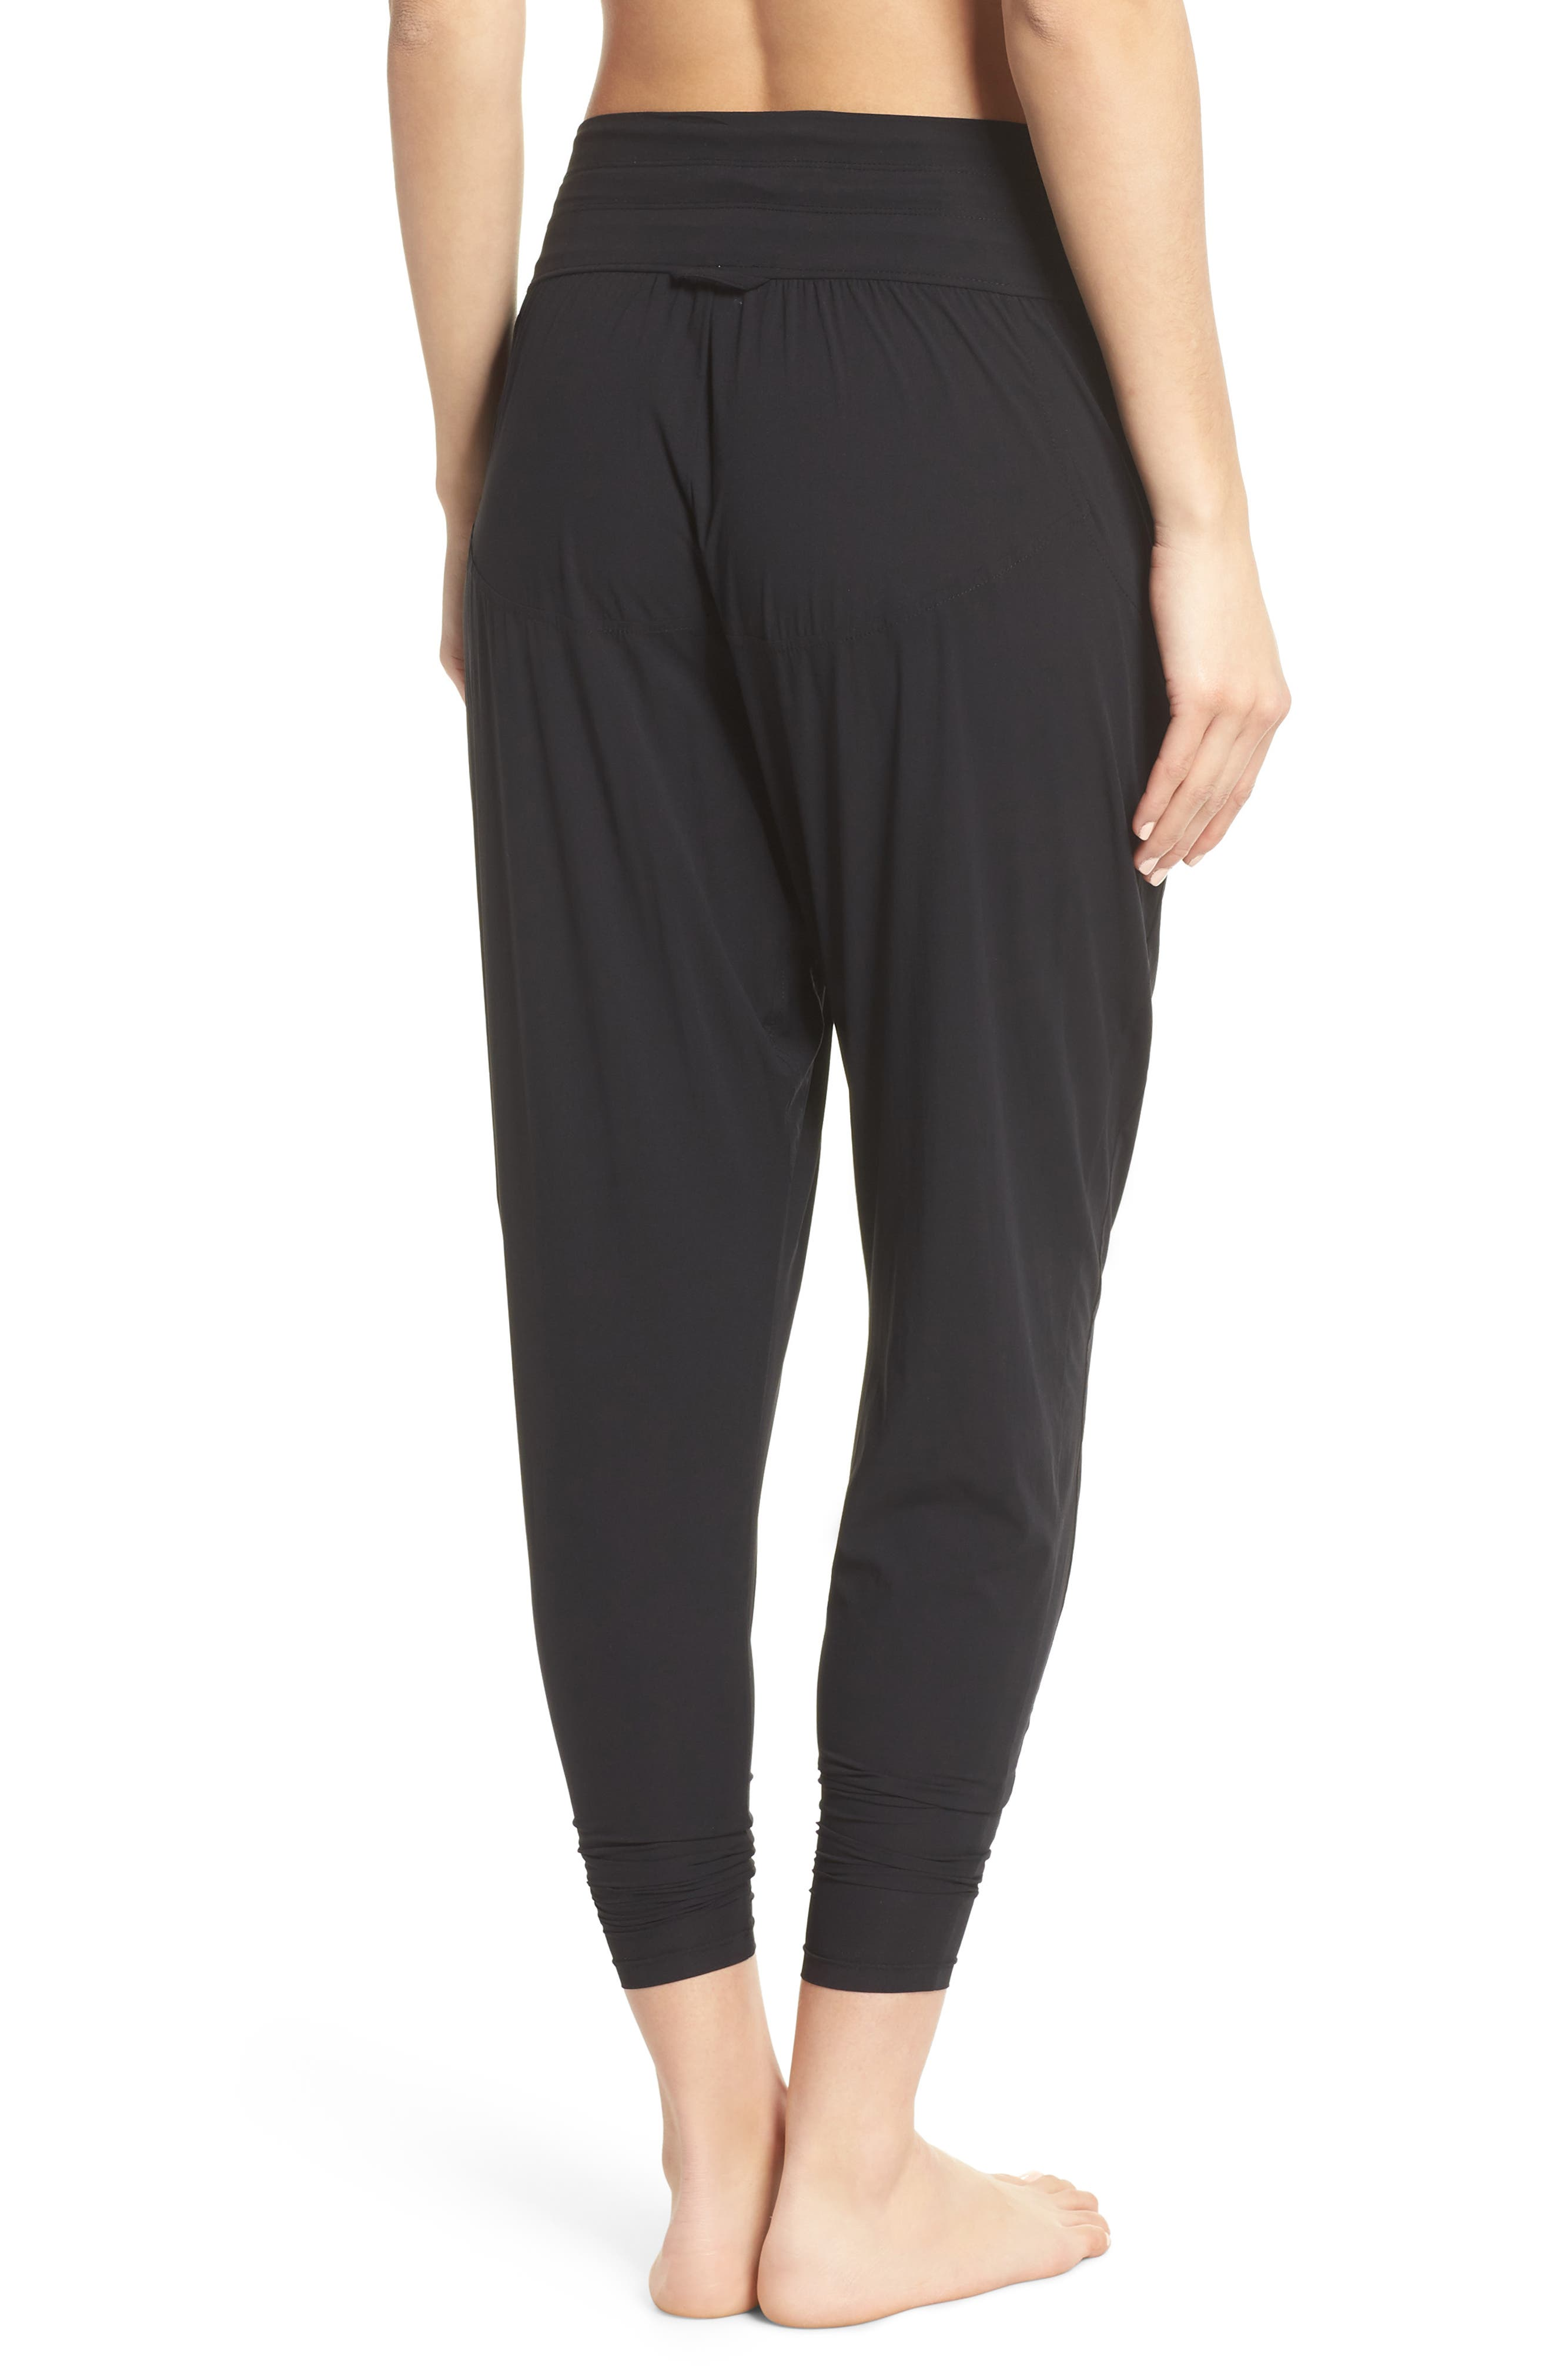 FREE PEOPLE MOVEMENT,                             Cardio Harem Pants,                             Alternate thumbnail 2, color,                             001